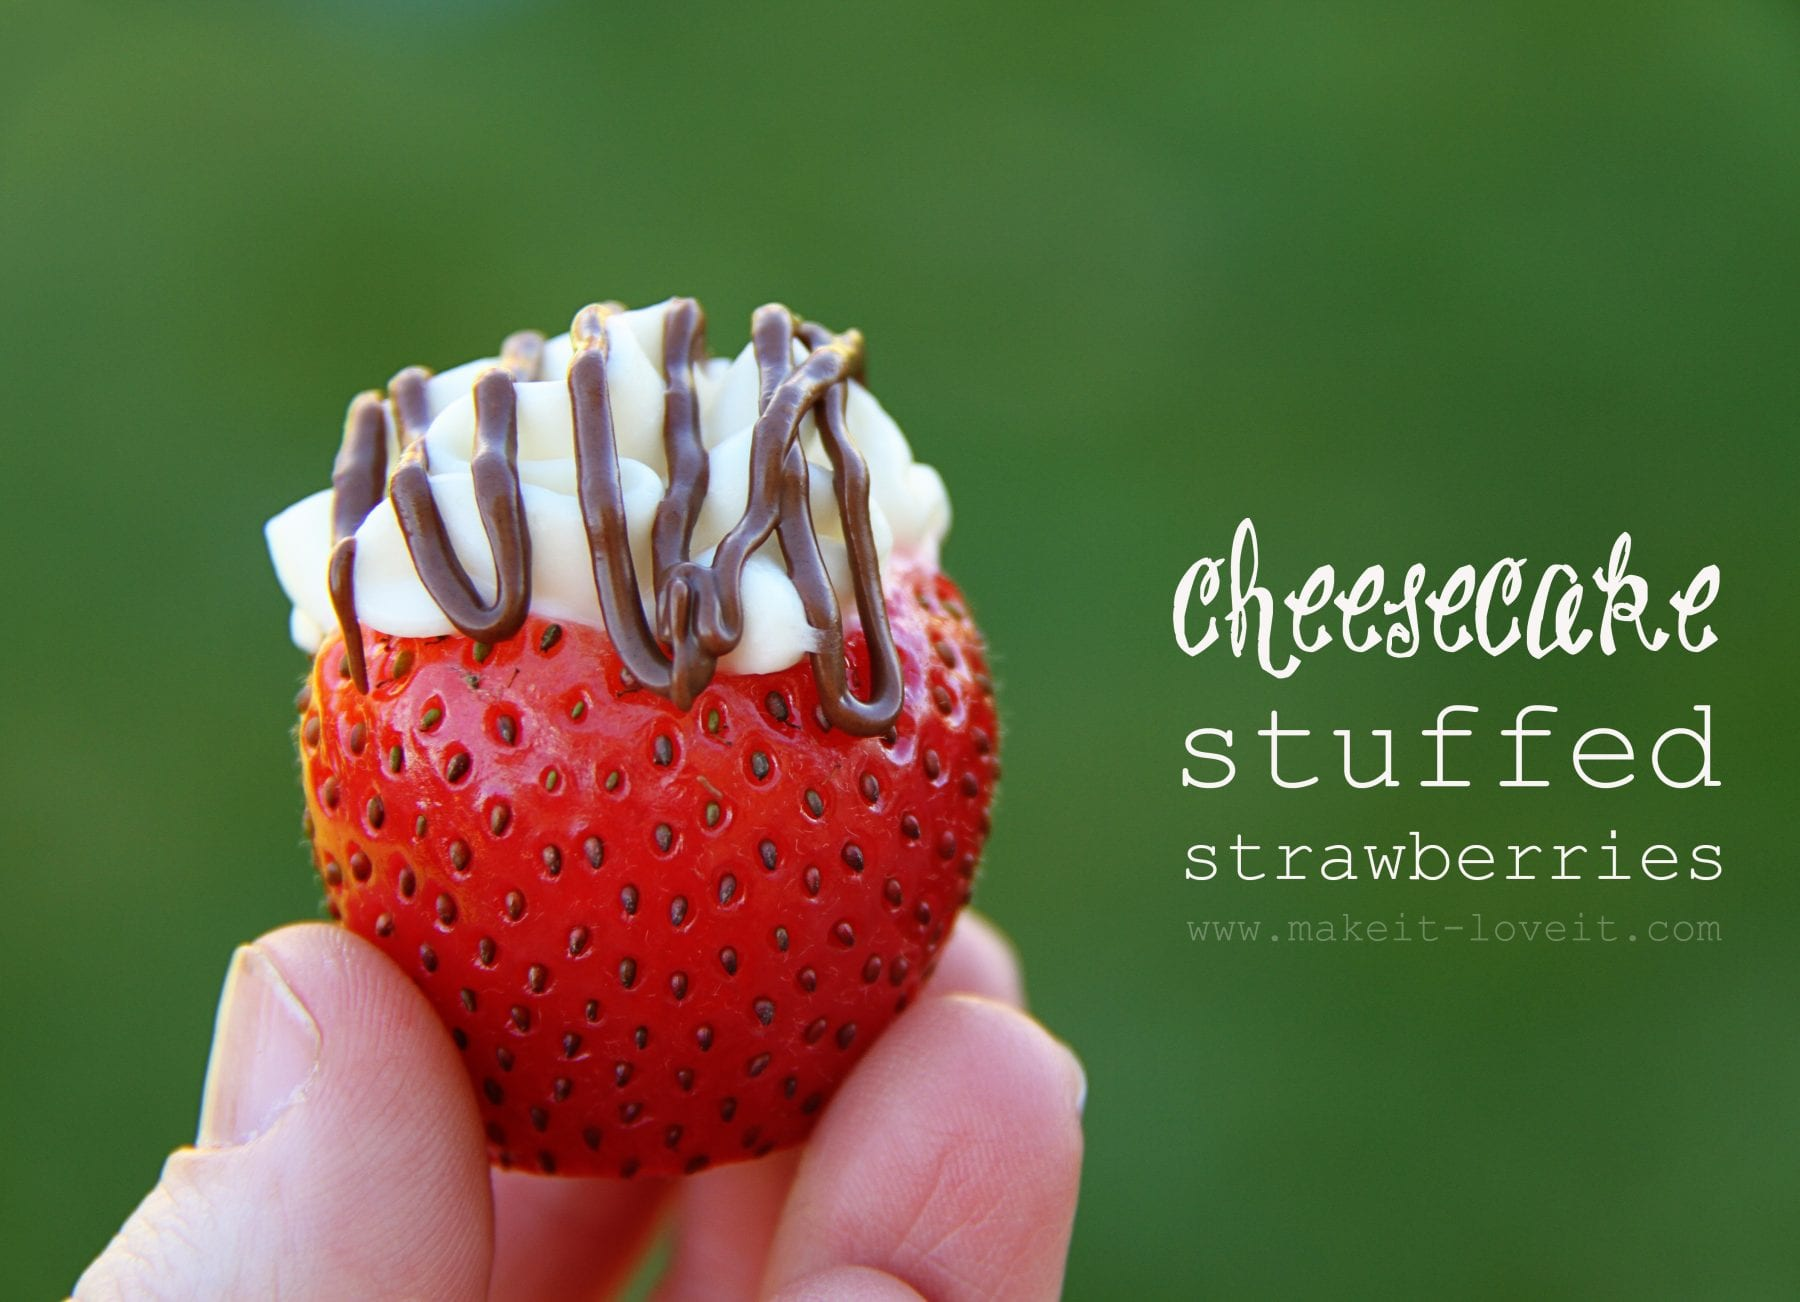 Simple and speedy 'cheesecake stuffed strawberries'